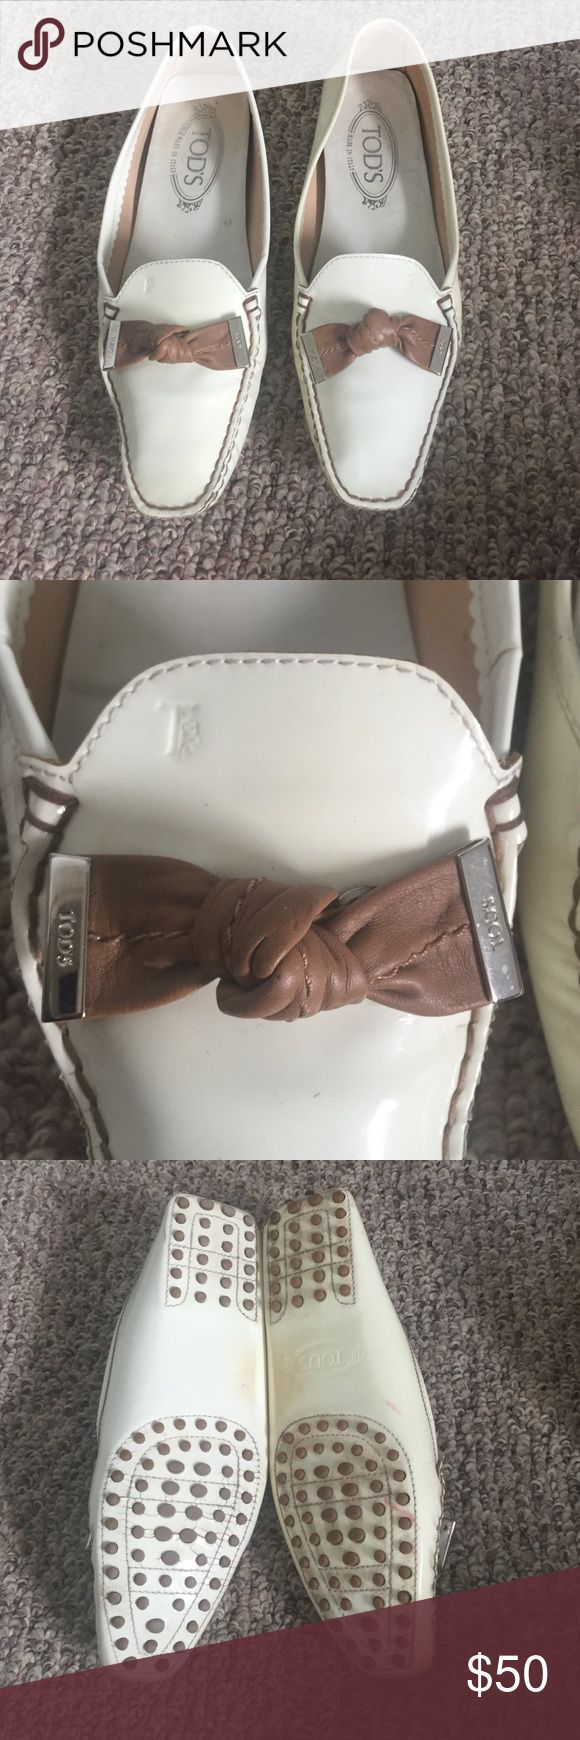 Tods Authentic tods driving loafers. In good used condition. Patent leather Tod's Shoes Flats & Loafers